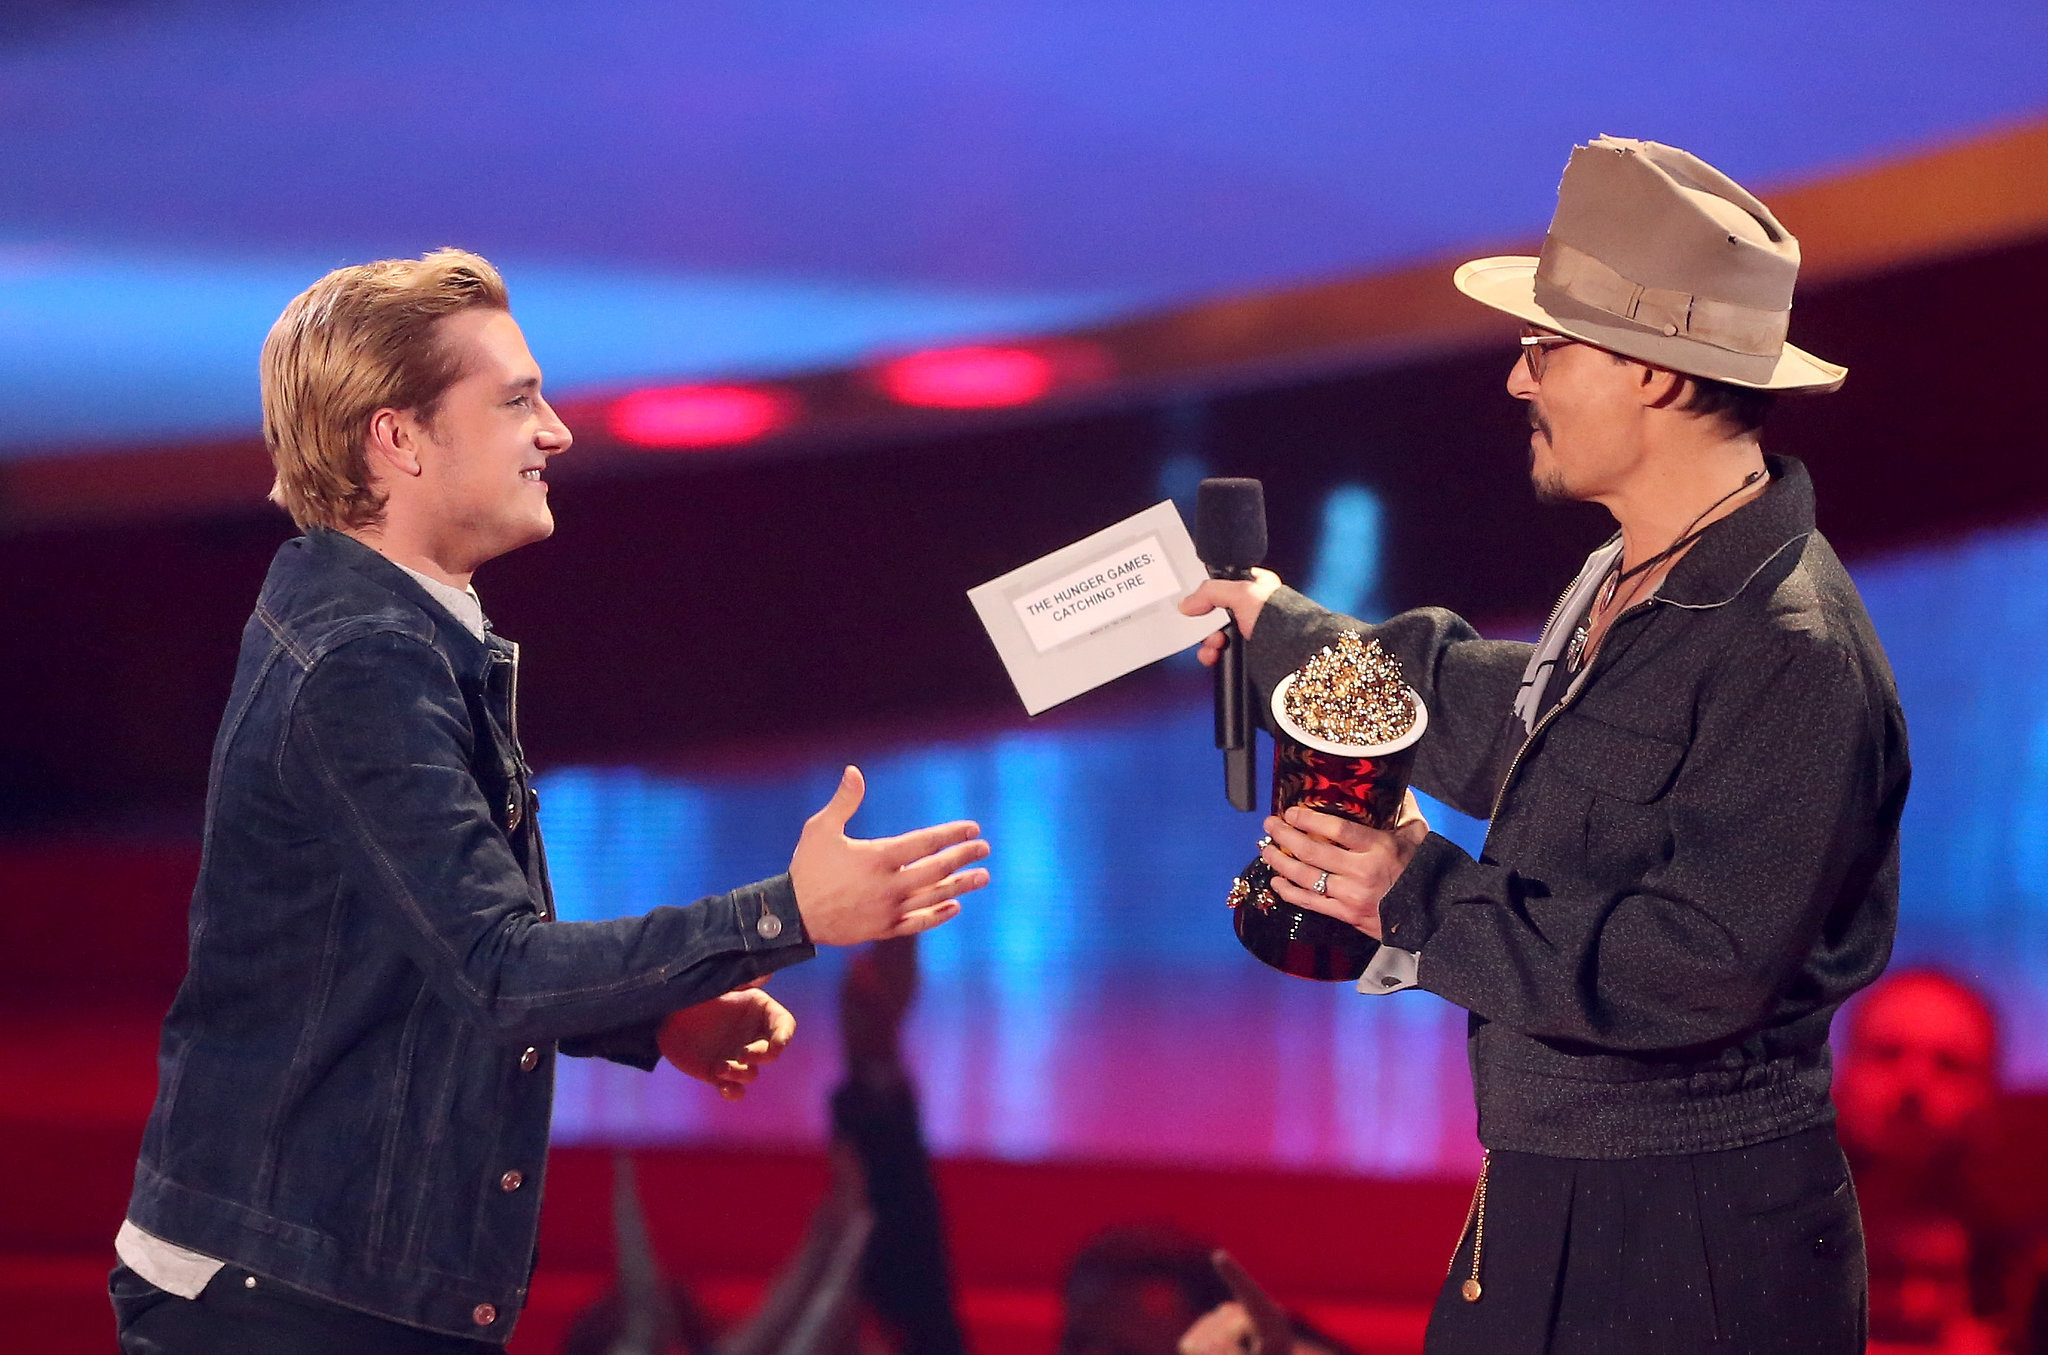 The night ended with this moment between Johnny Depp and Josh Hutcherson.